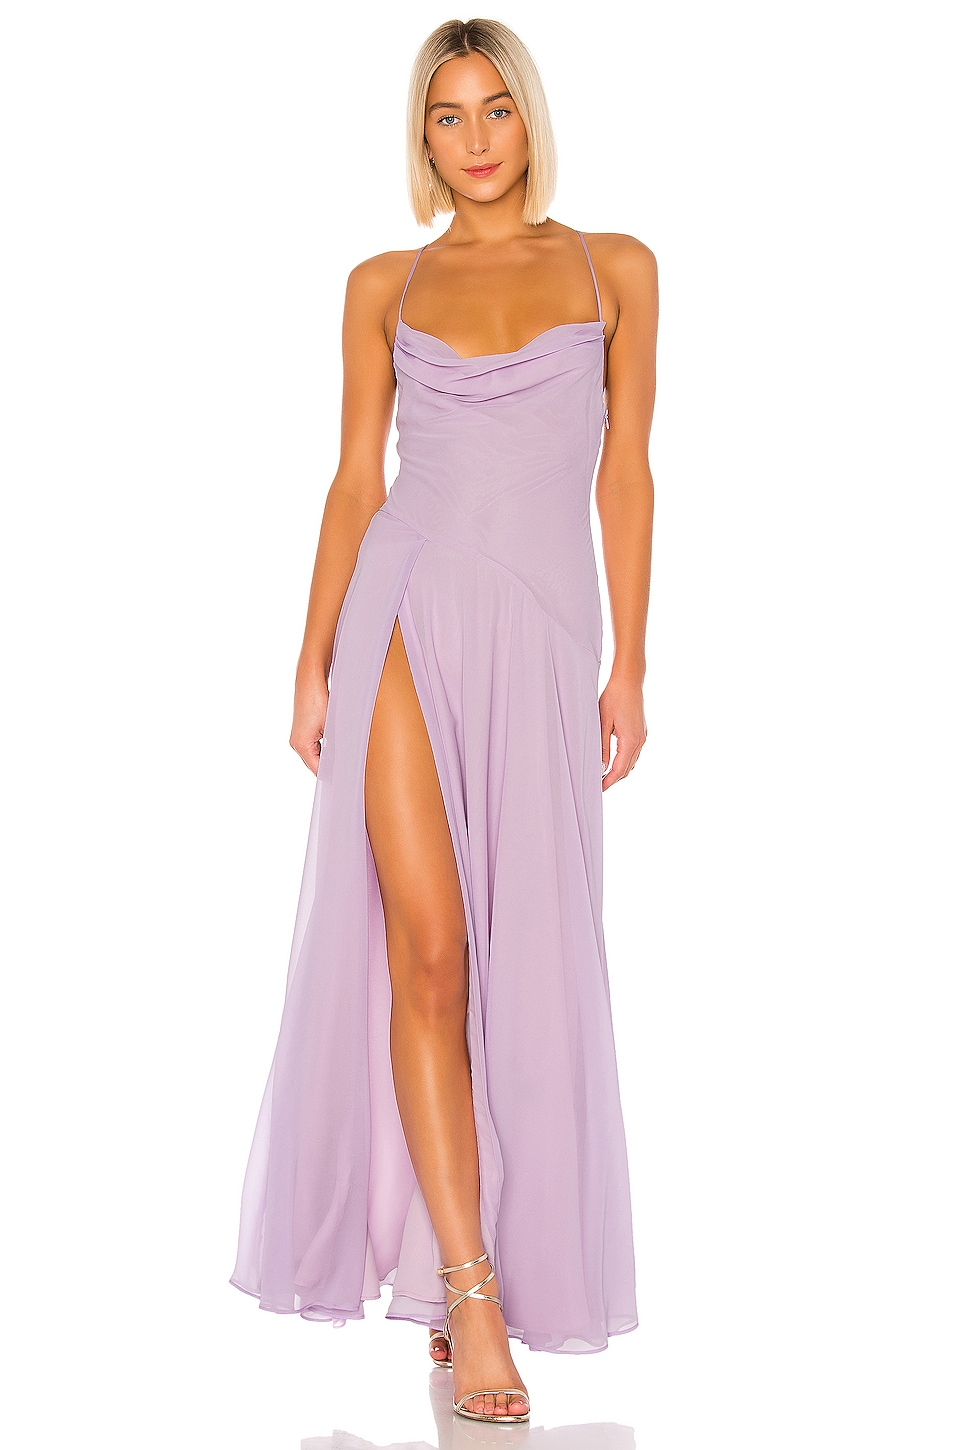 Michael Costello x REVOLVE Jenna Gown in Lilac